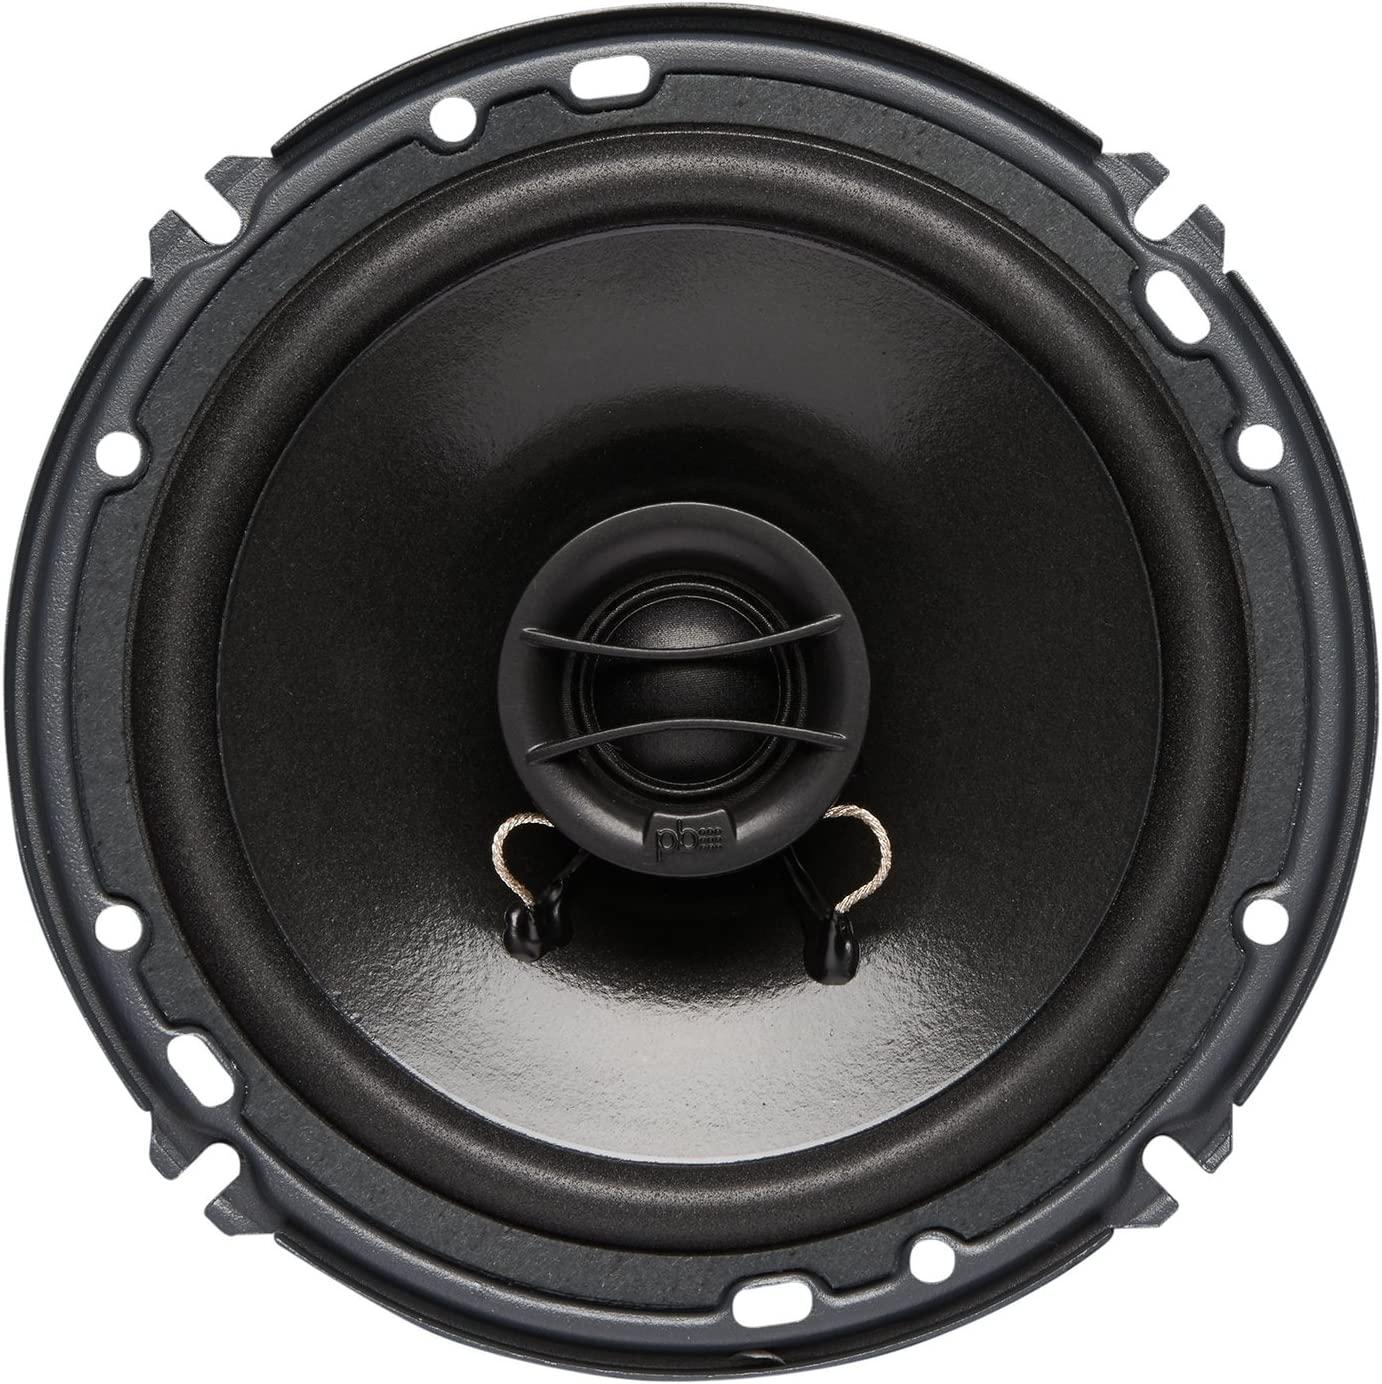 Set of 2 Powerbass S-Series Full Range 4 Ω 6.75 Speaker S6752 ,Black